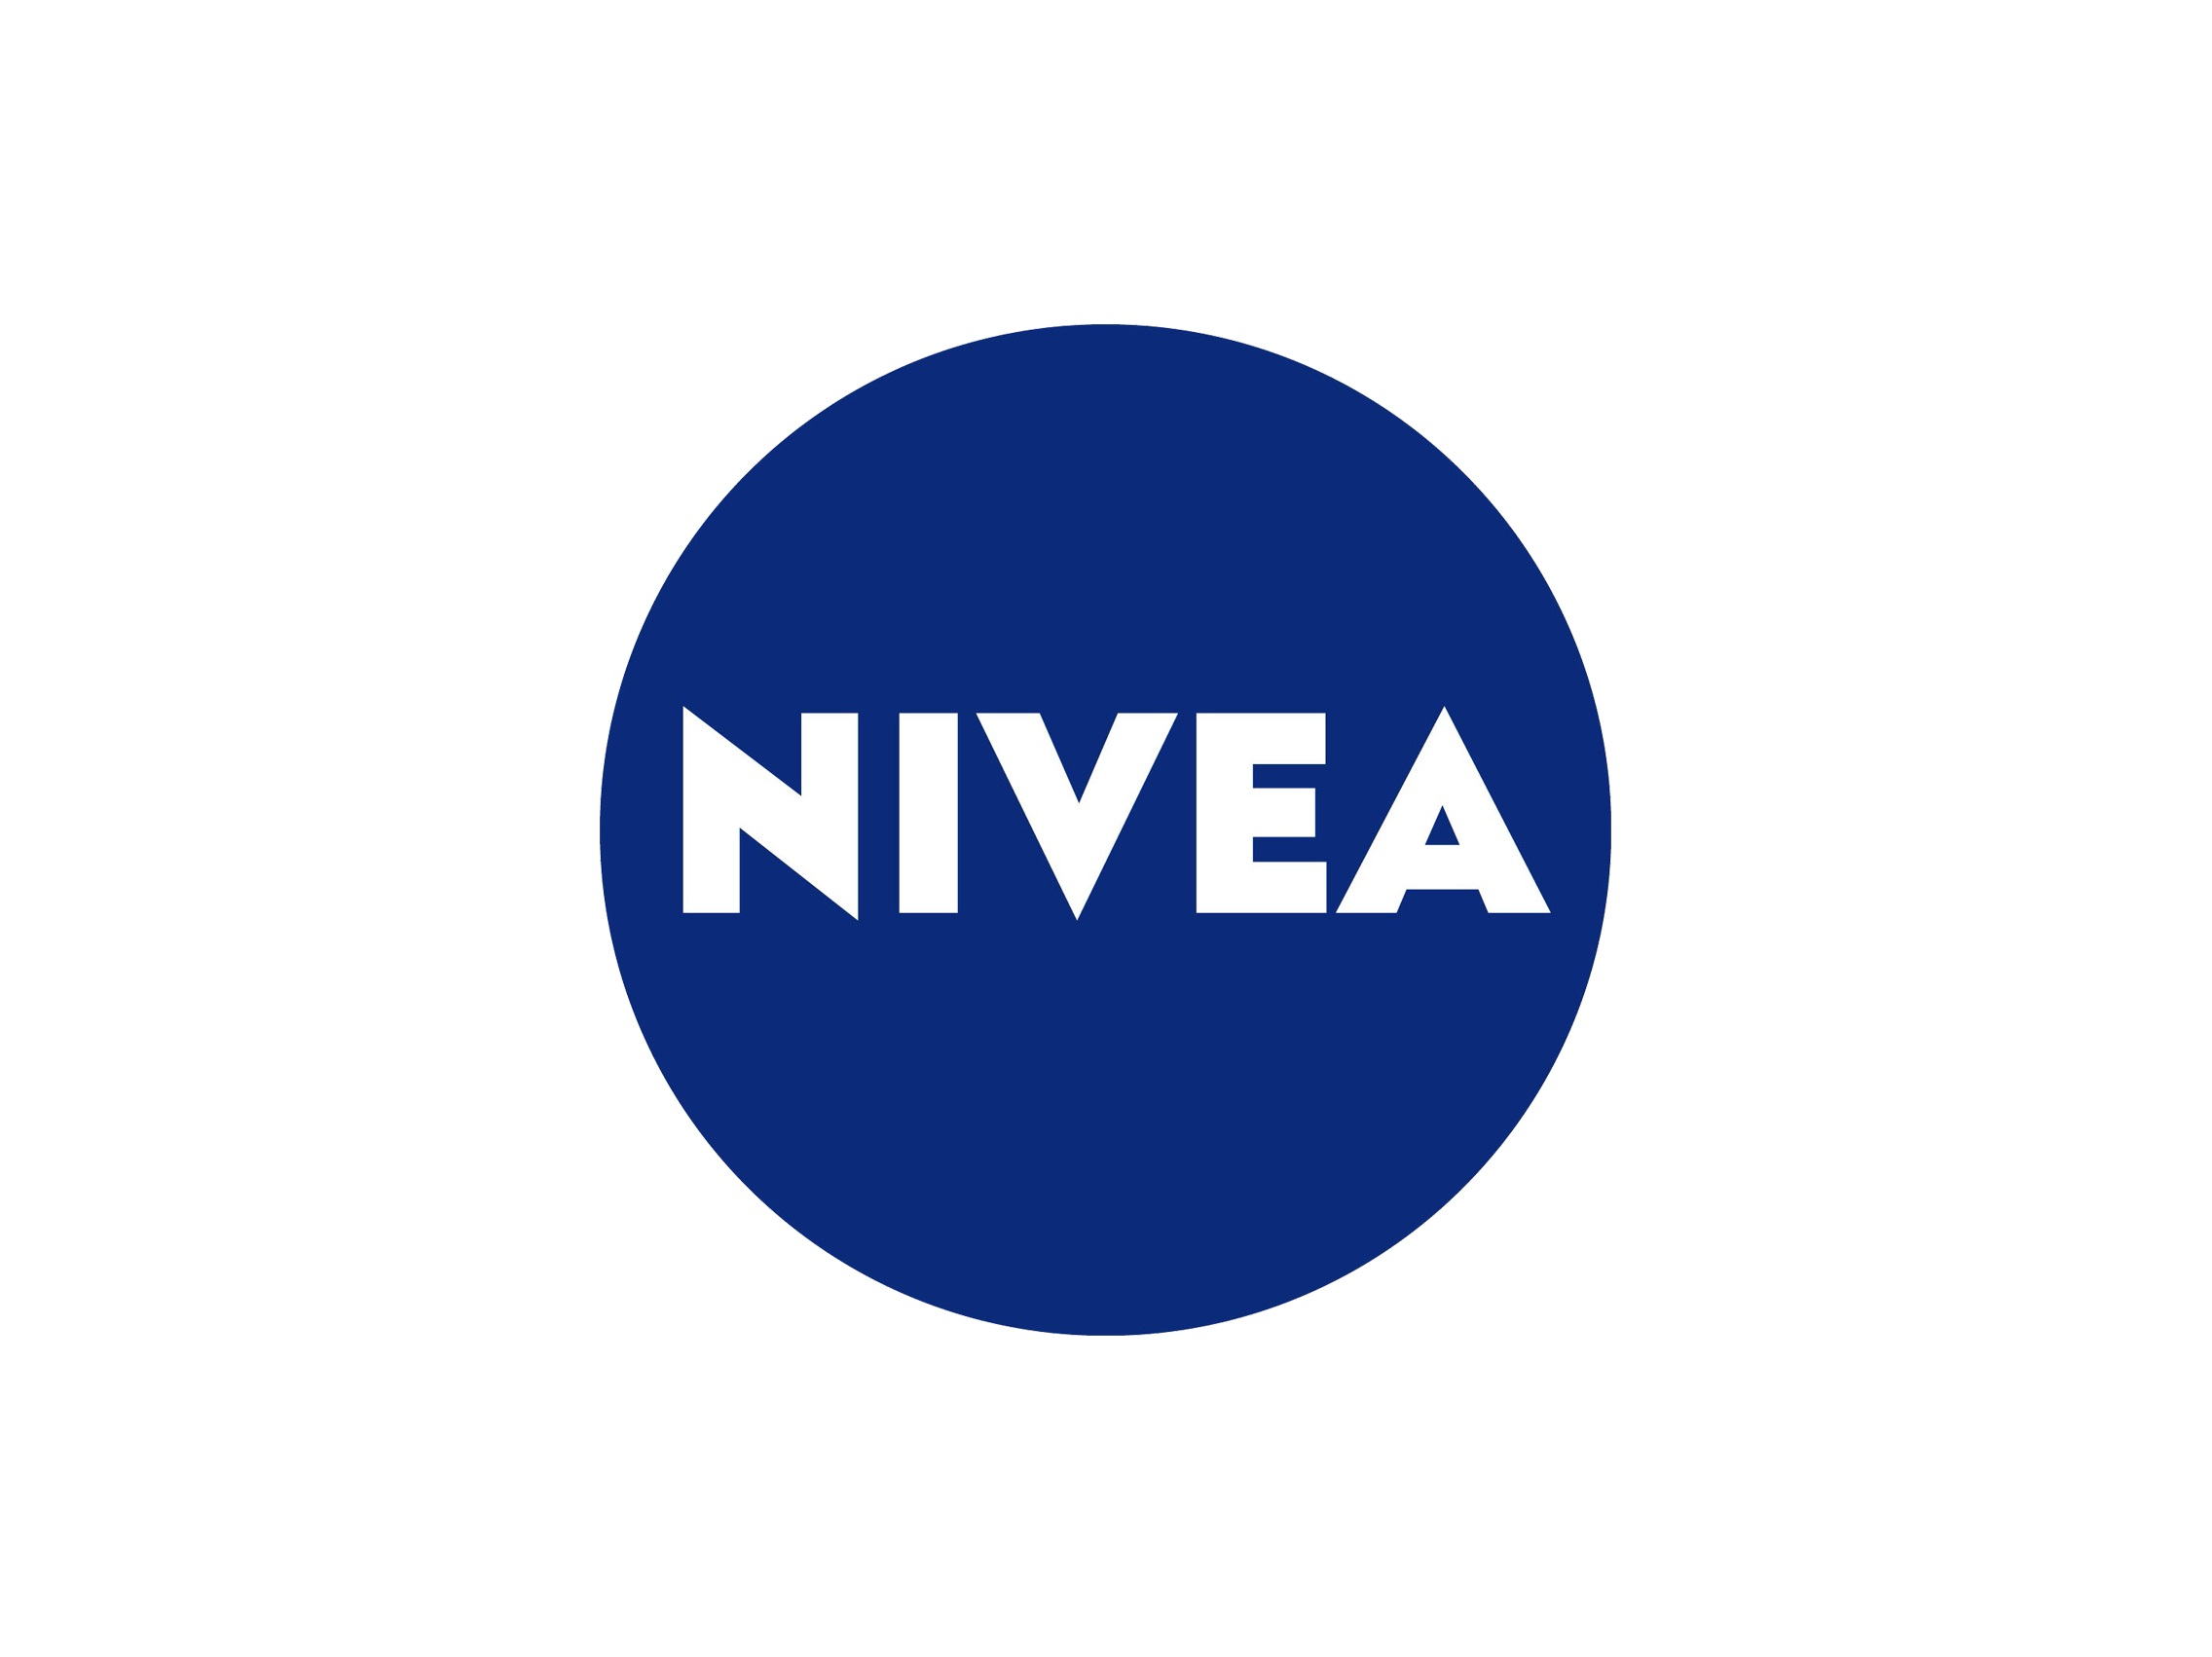 NIVEA Video in Print